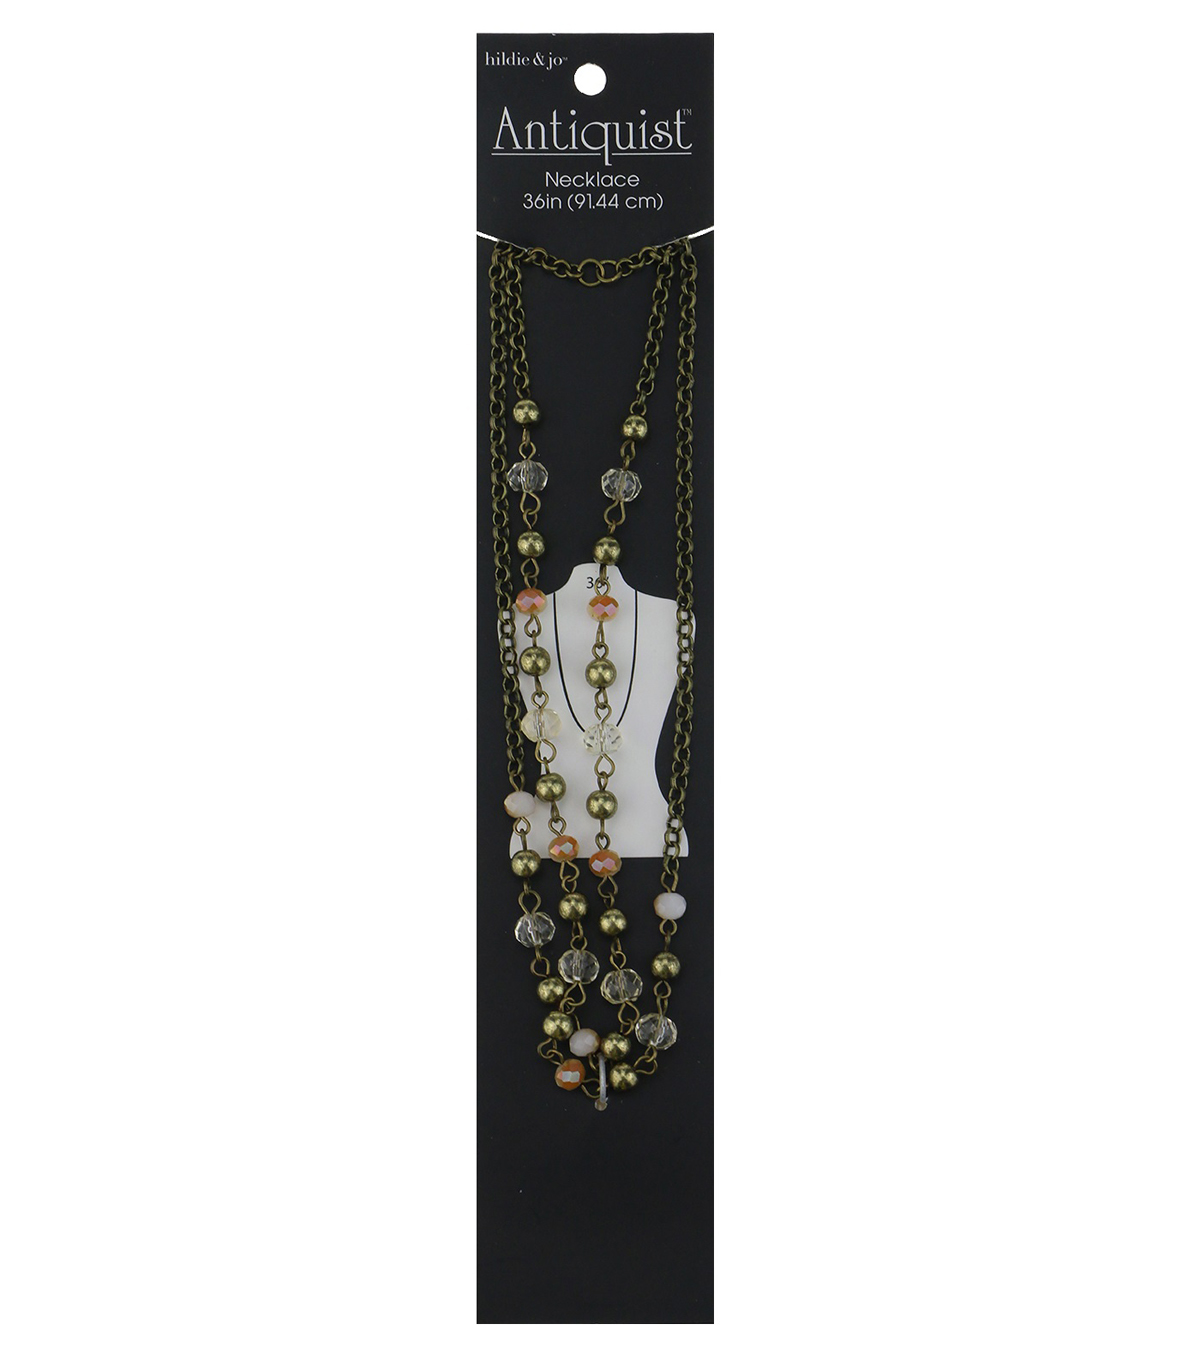 hildie & jo™ Antiquist 36'' Antique Gold Necklace-Multi Beads